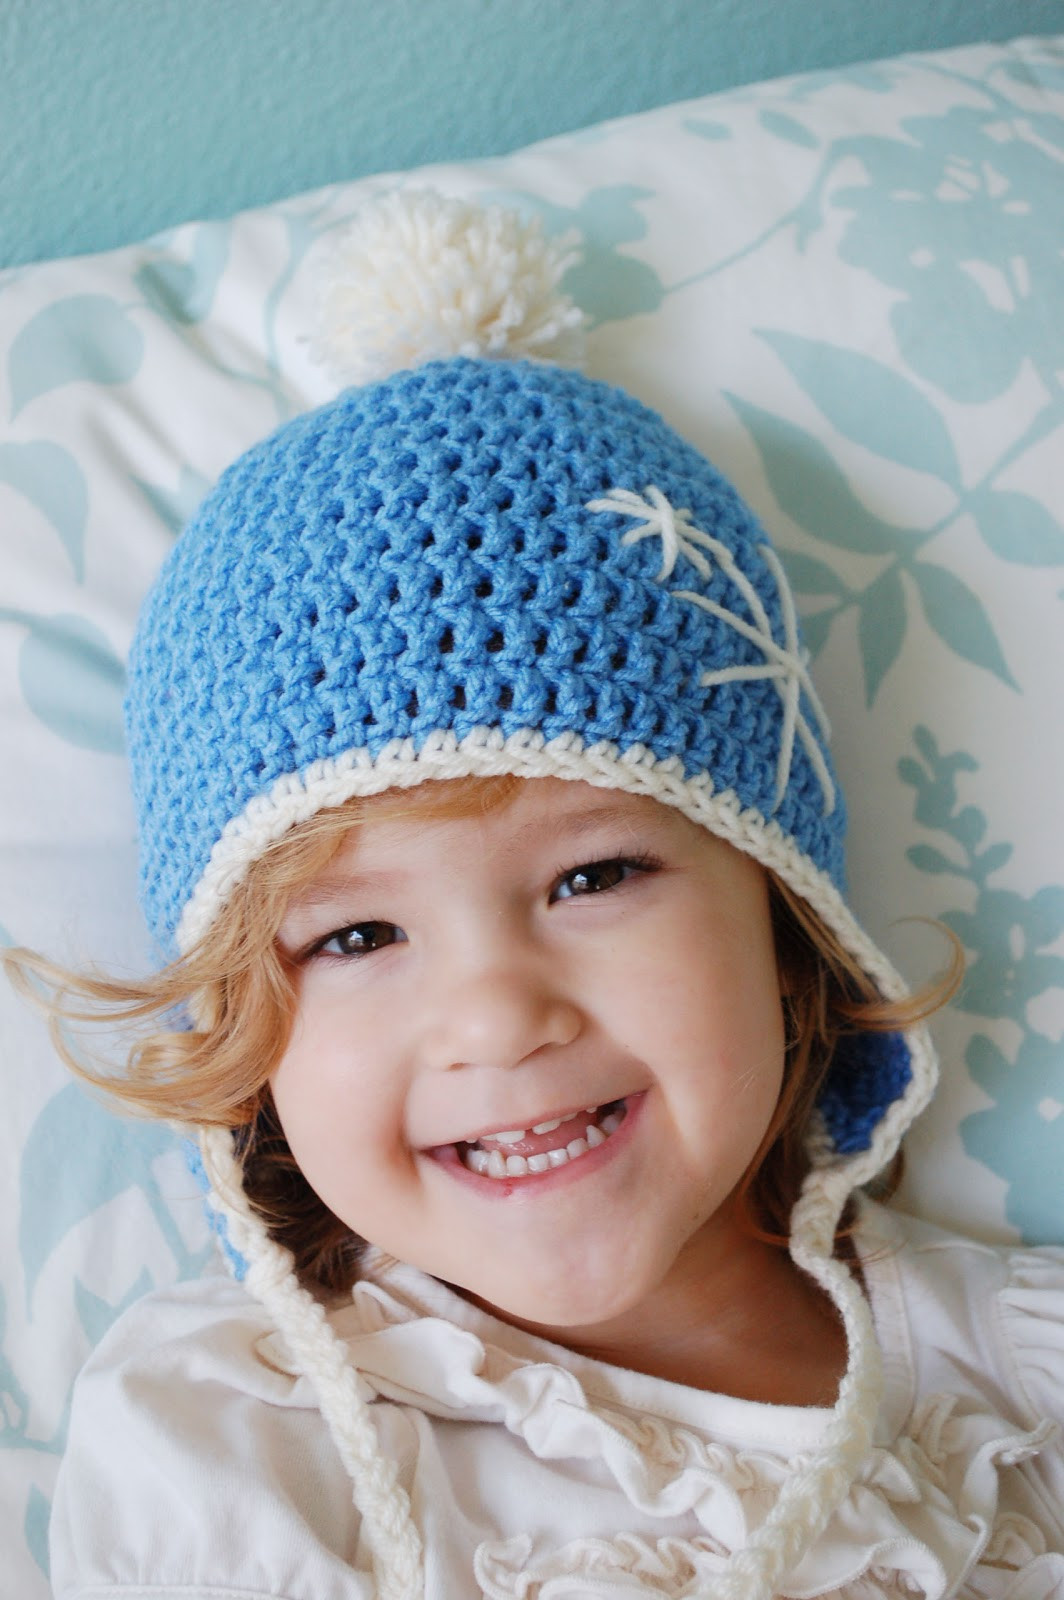 New Free Crochet Patterns for Baby Hats with Ear Flaps Free Crochet Patterns for toddlers Of Brilliant 47 Photos Free Crochet Patterns for toddlers